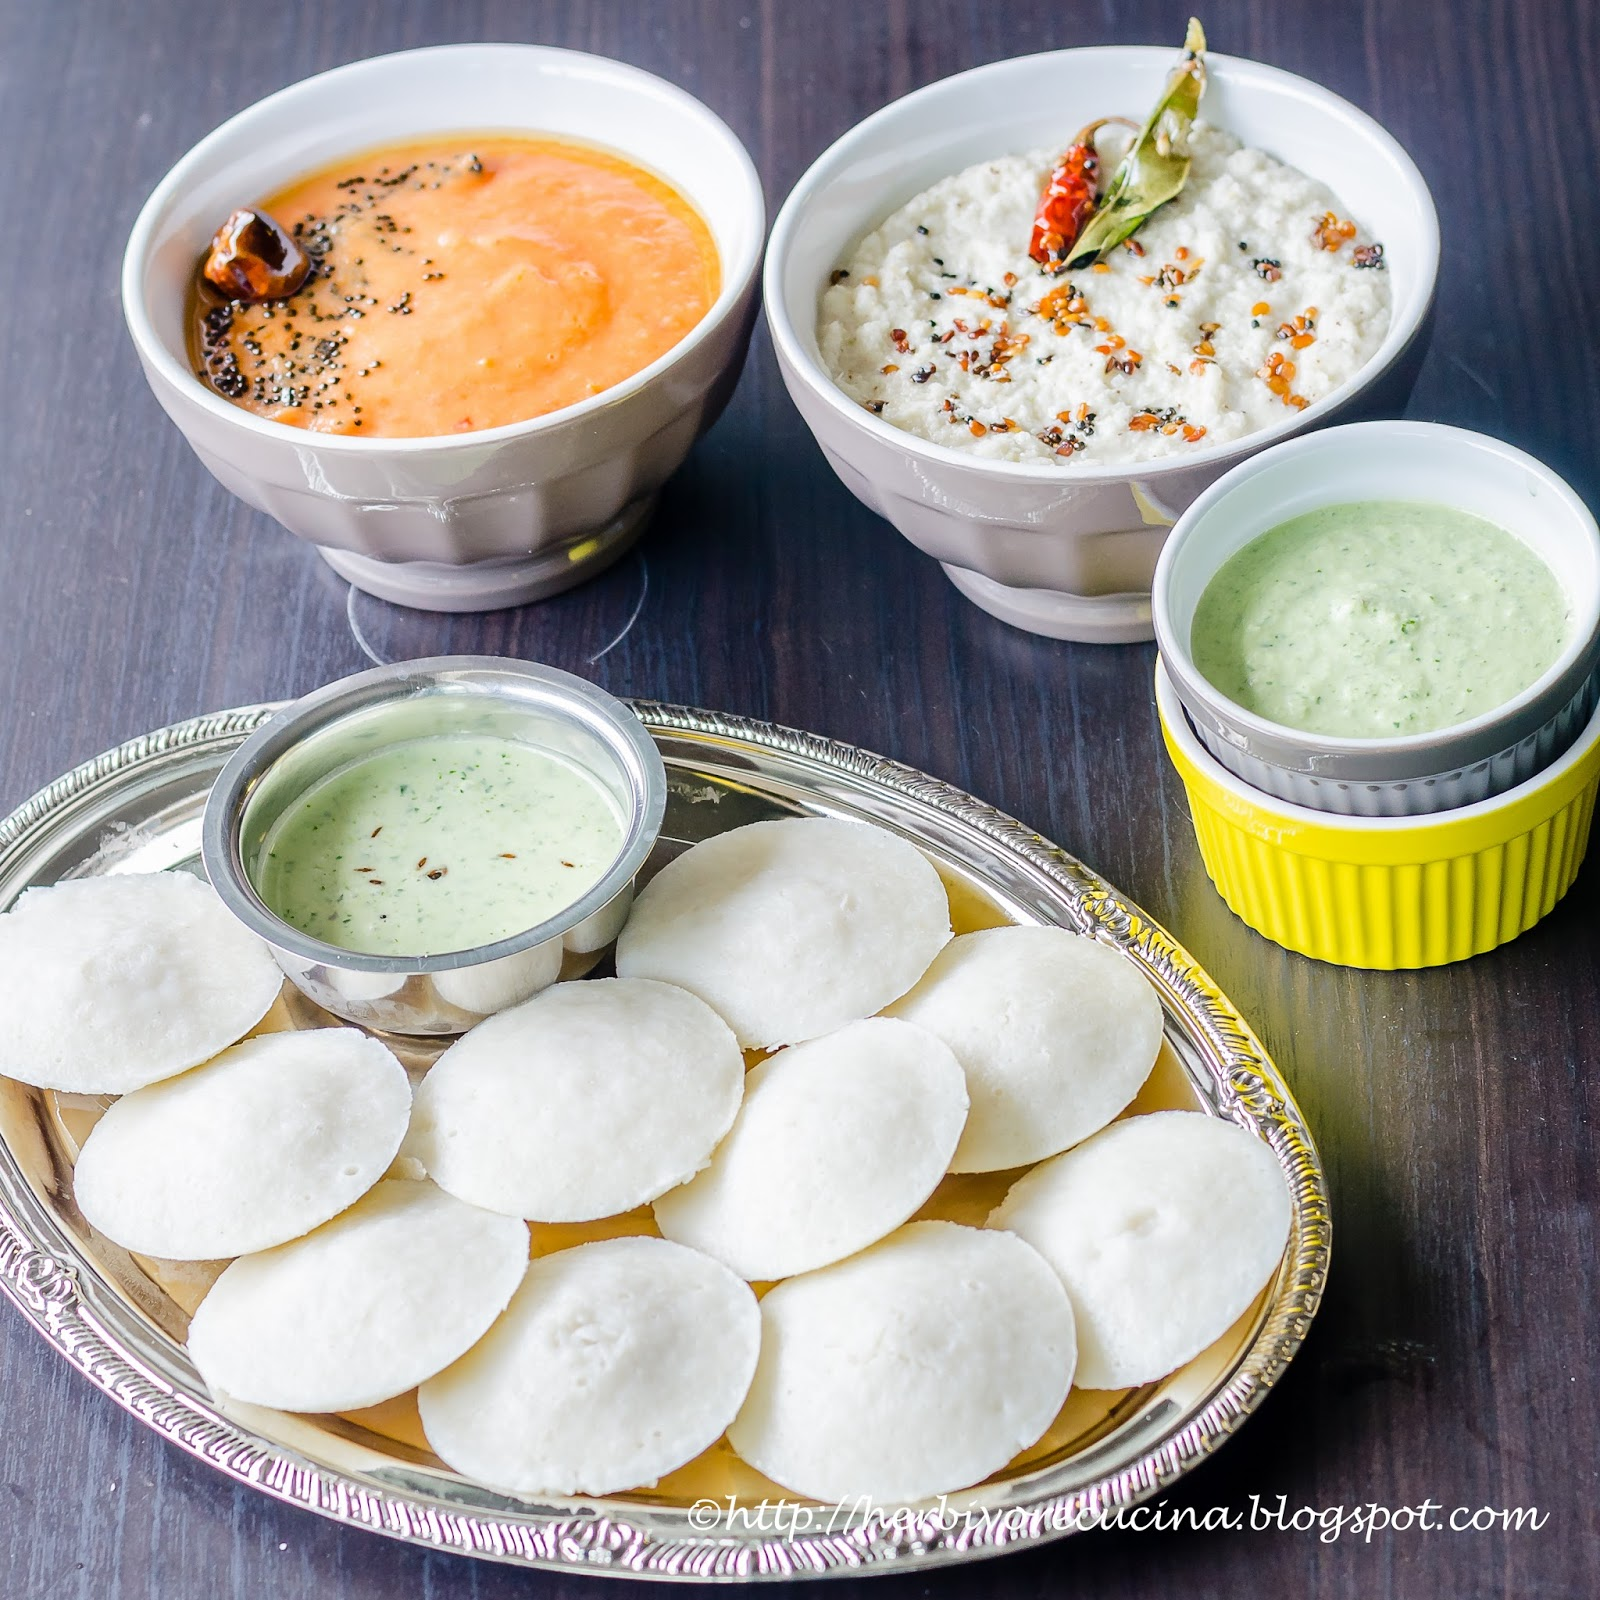 Herbivore Cucina: Rice Idli | South Indian Rice Cakes